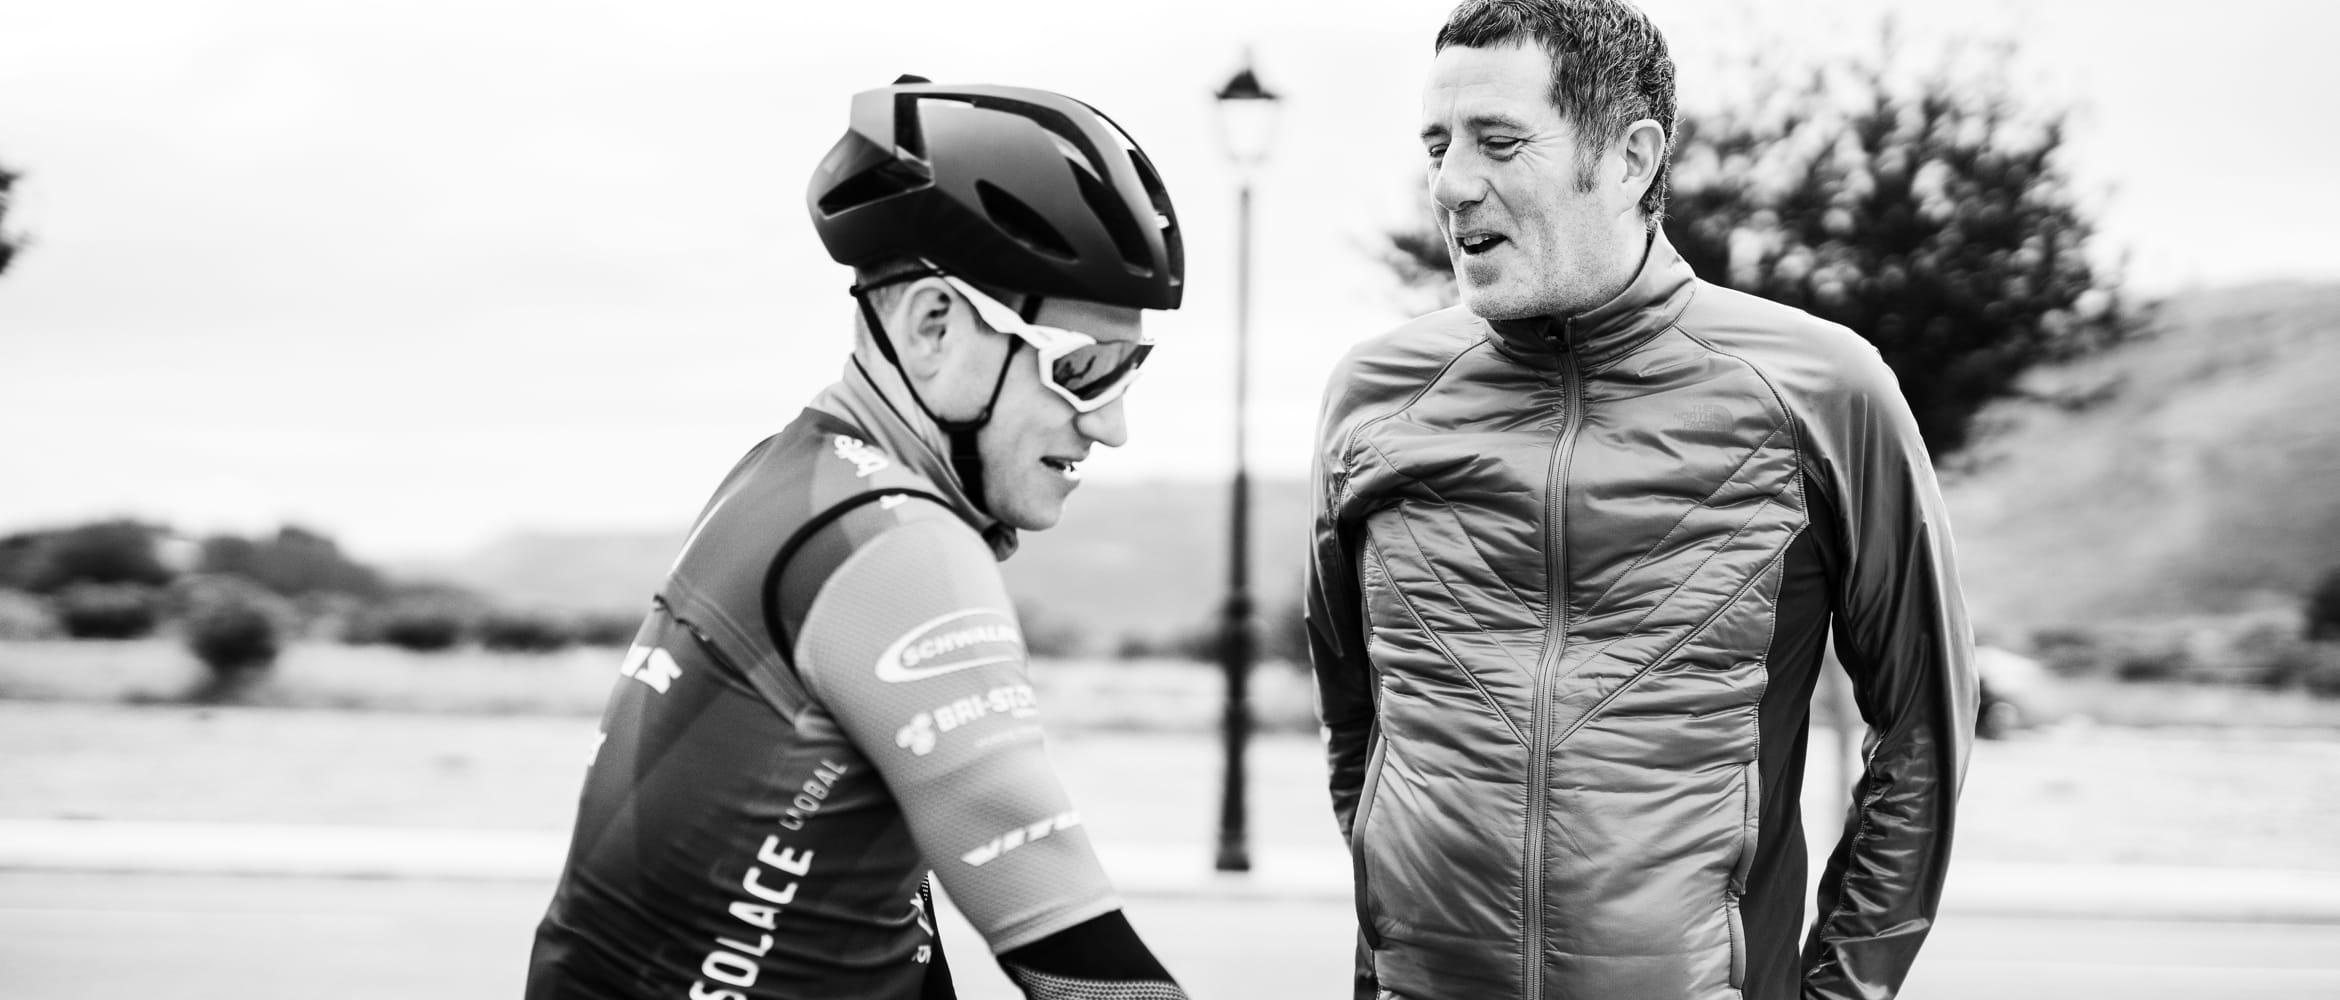 Phil Jones MBE talking to a cyclist